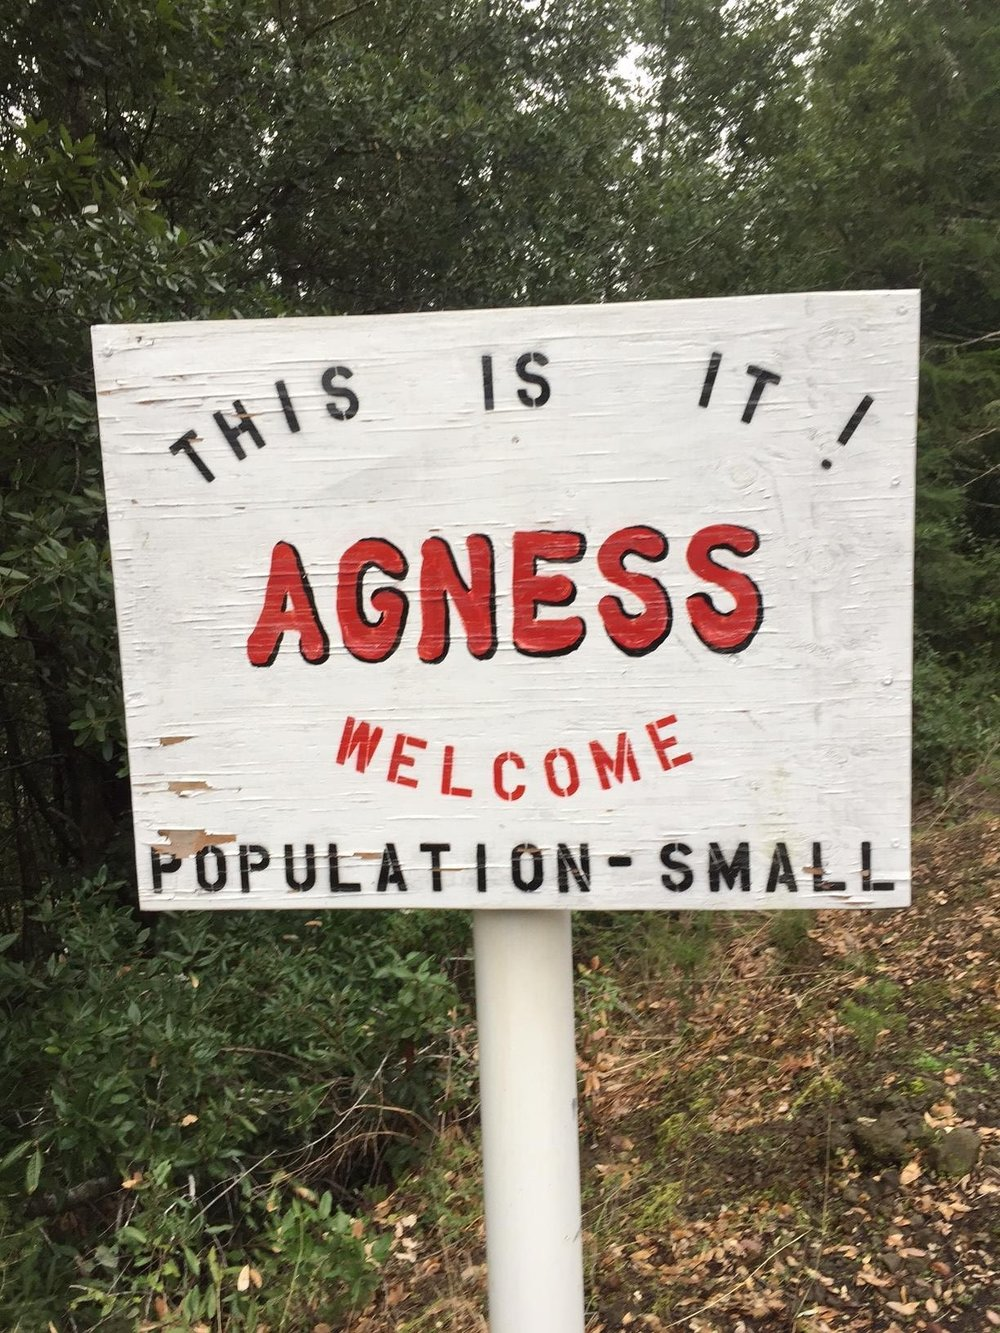 The small town of Agness, Oregon welcomes you. Photography by Max Salzburg of Sonja K Photography.